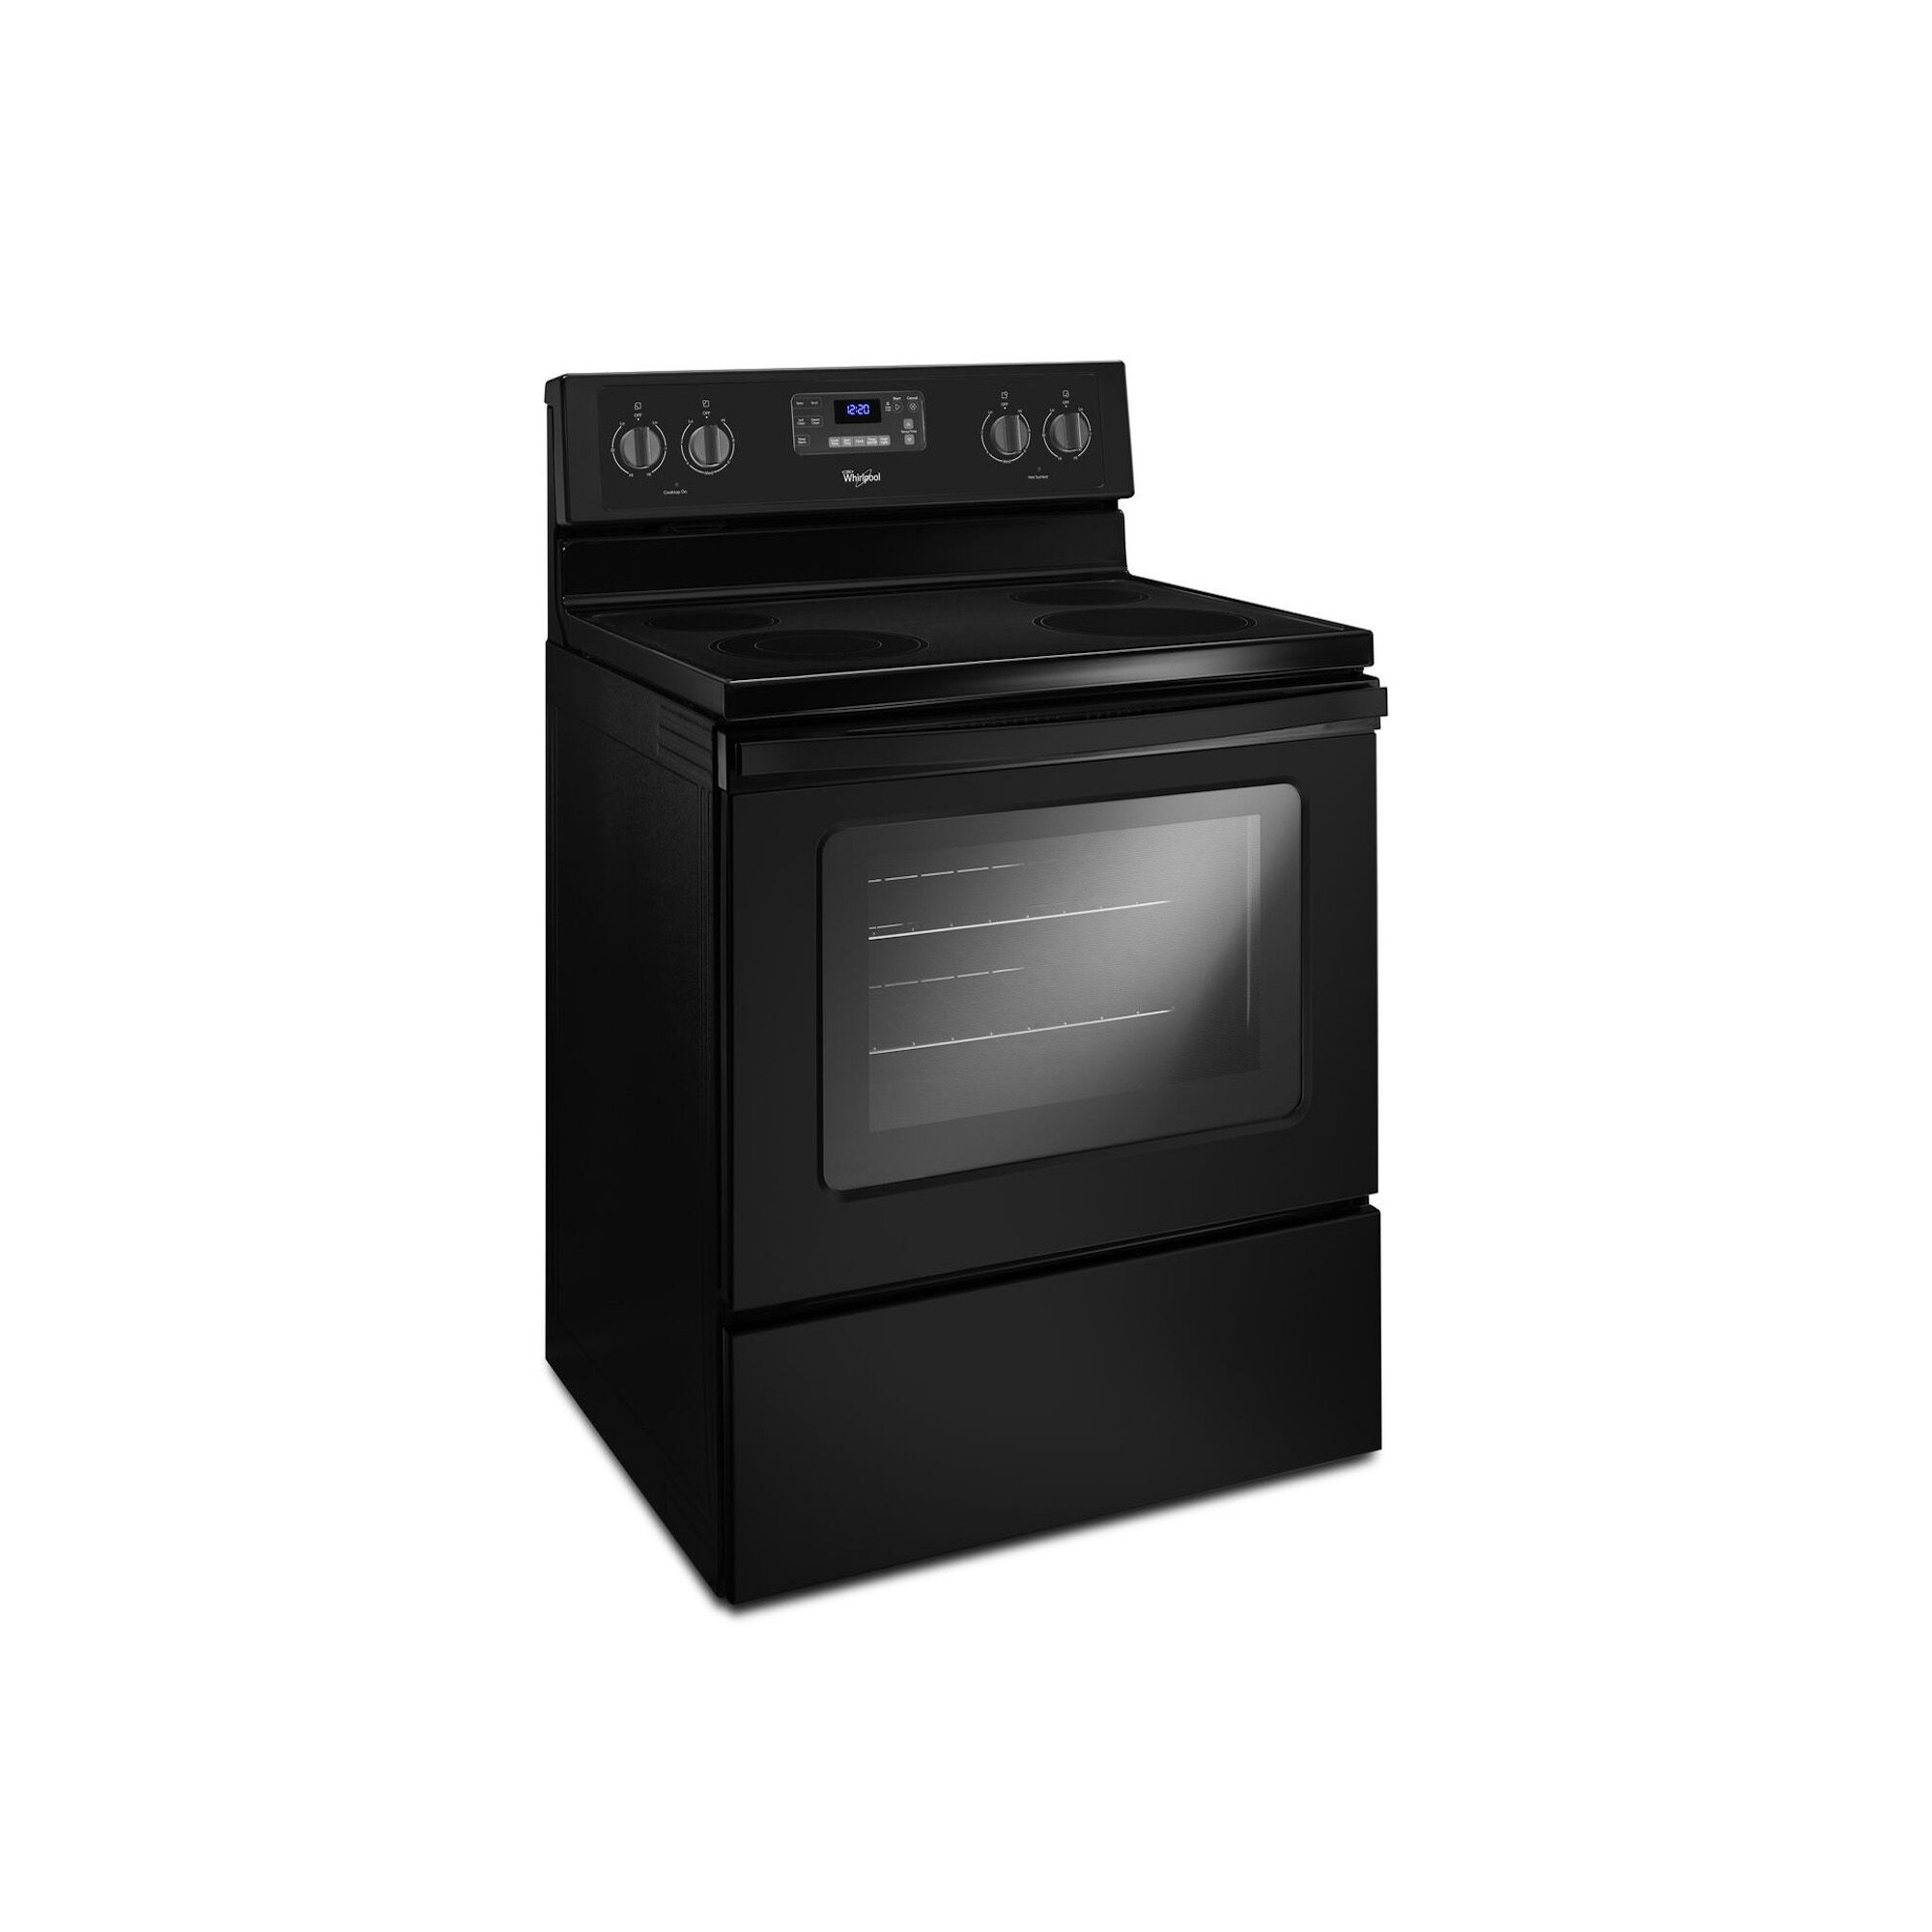 Attractive Self Cleaning Electric Range With Ceramic Cooktop